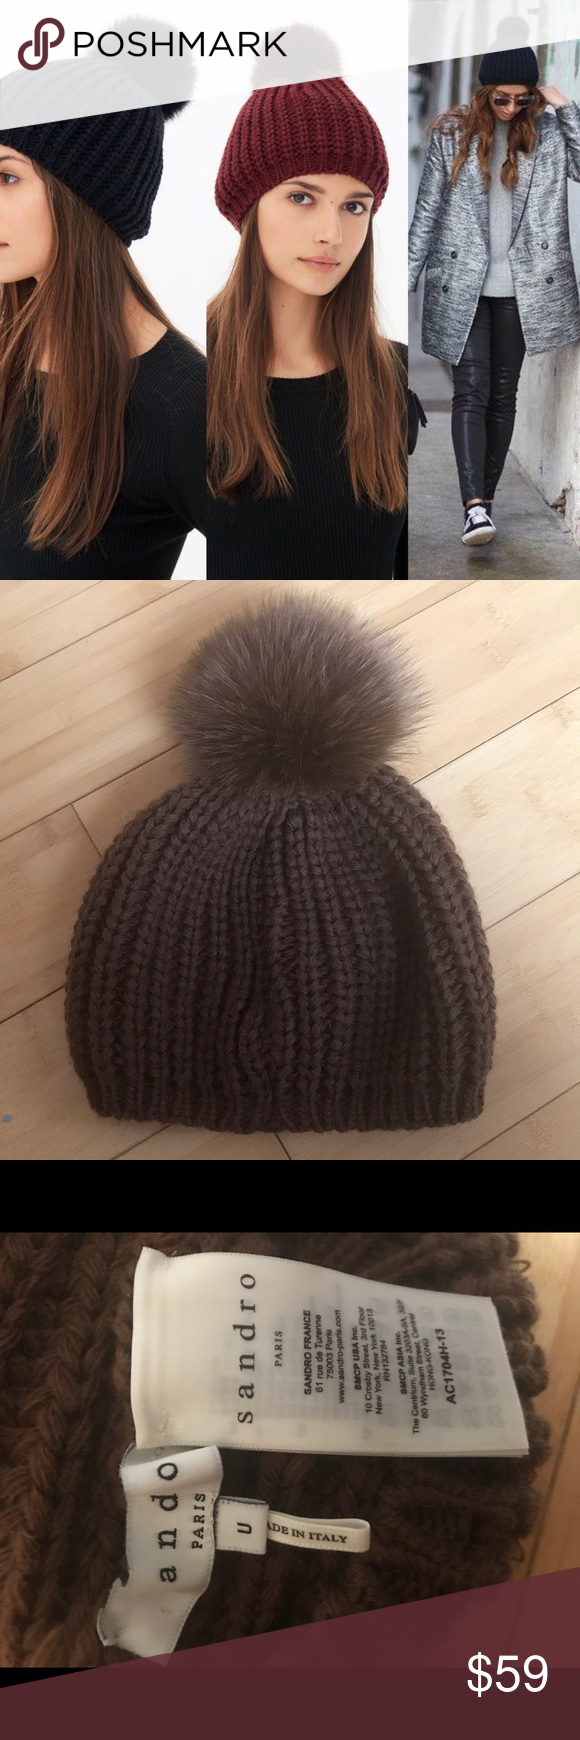 aa029e6afd9 Sandro Knitted Beanie with Pom Pom (brown) Brown Sandro beanie with real  fur Pom